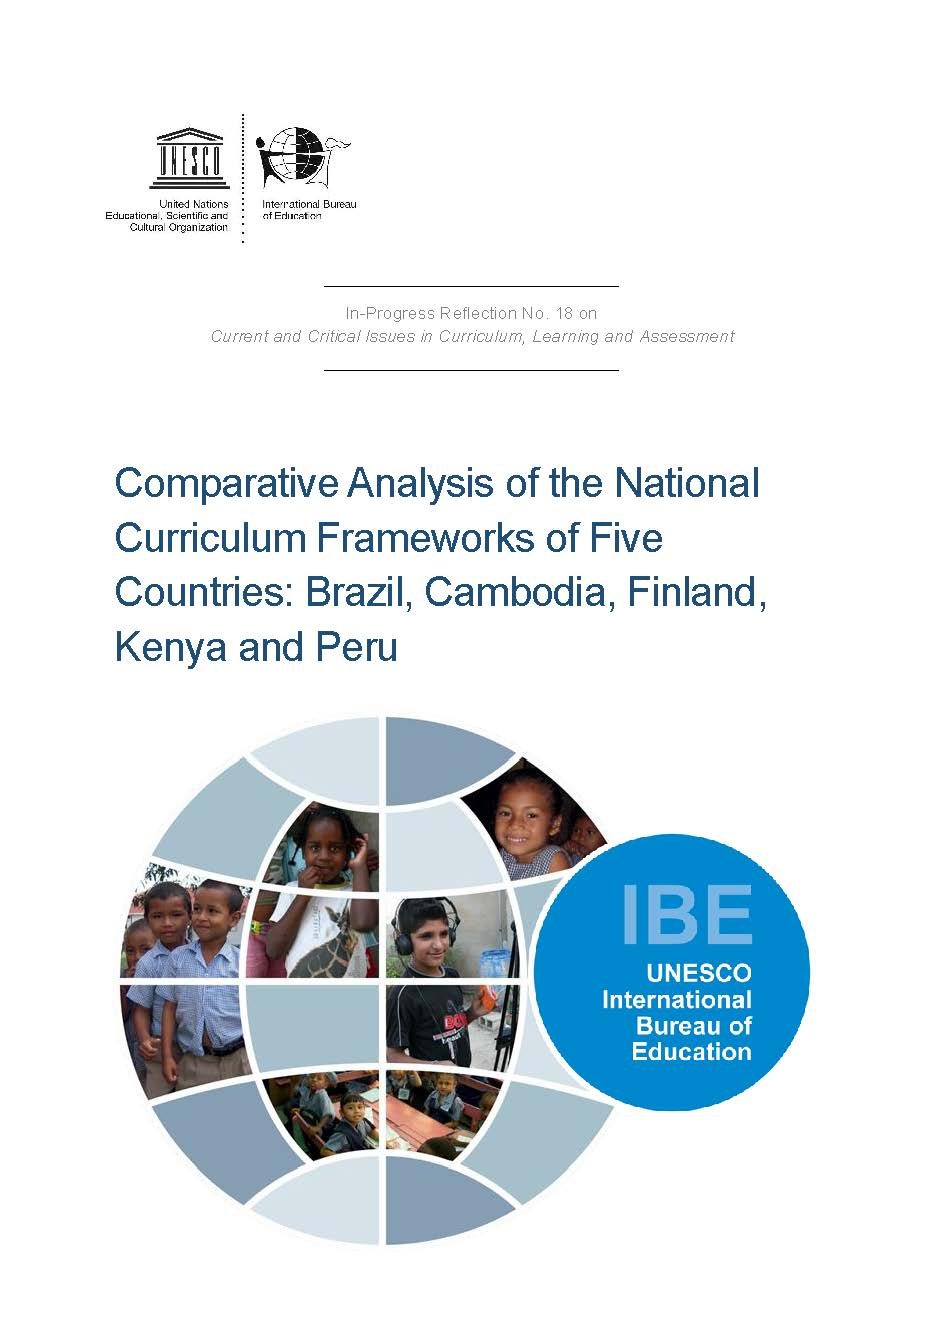 Comparative Analysis of the National Curriculum Frameworks of Five Countries Brazil, Cambodia, Finland, Kenya and Peru